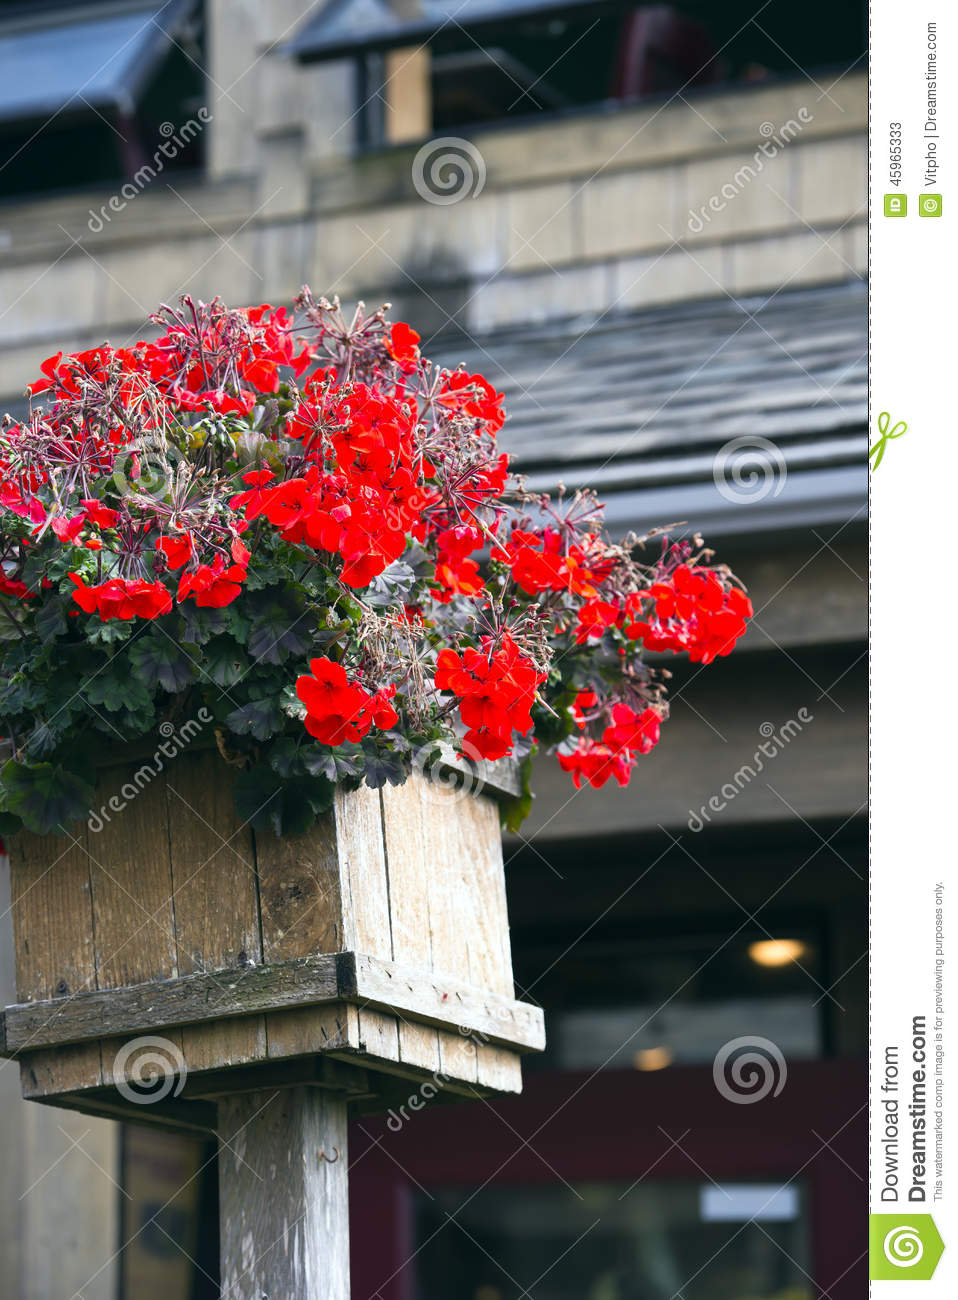 Geraniums in a wooden flower pot traditional rural romanian house porch royalty free stock - Care geraniums flourishing balcony porch ...